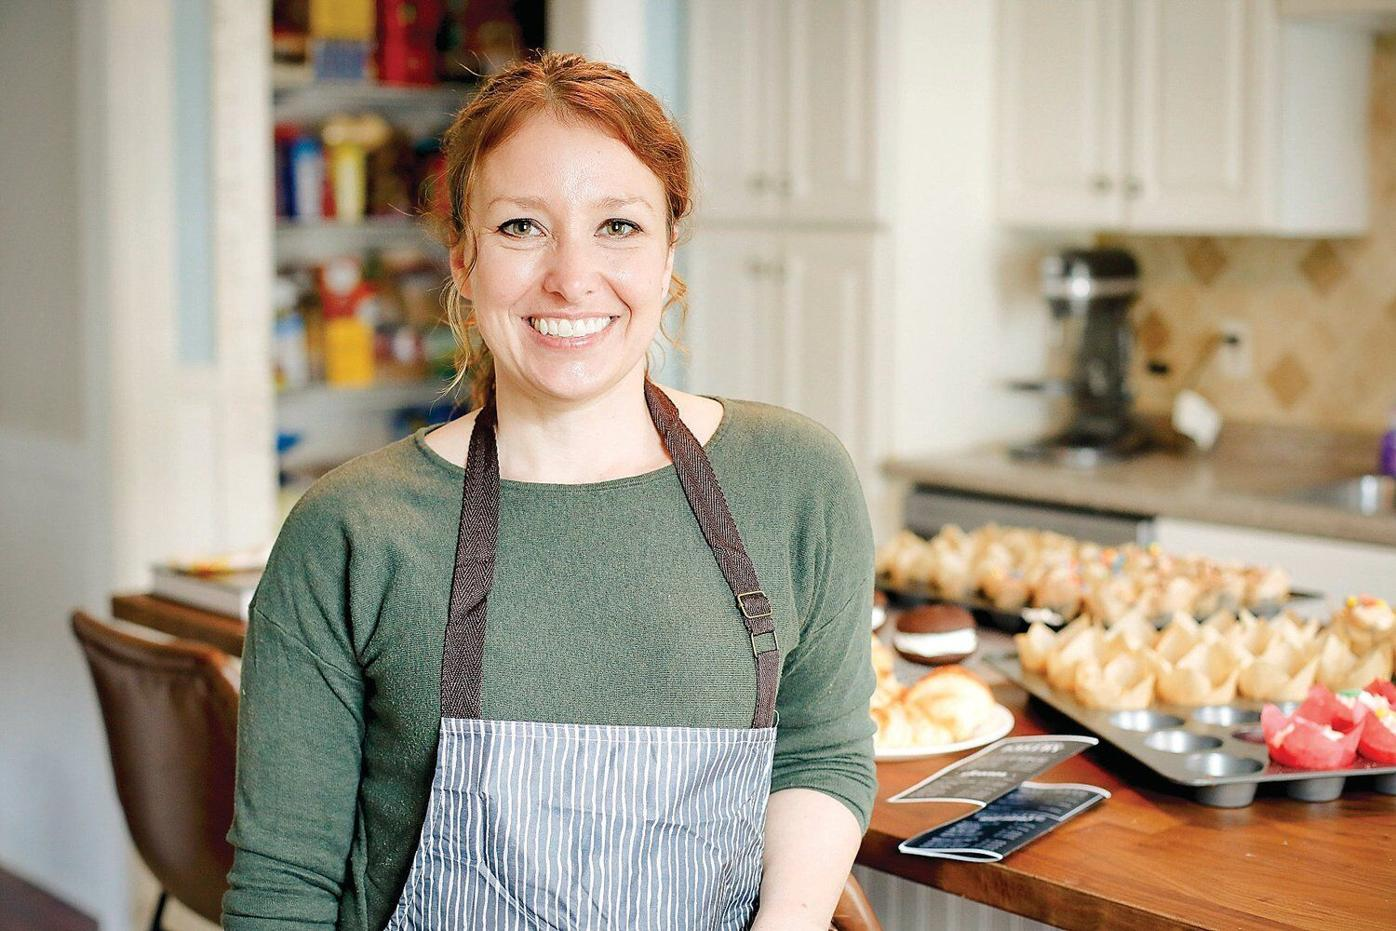 The Shire Cottage Bakery: Artisan breads, cupcakes made-to-order in baker's home kitchen